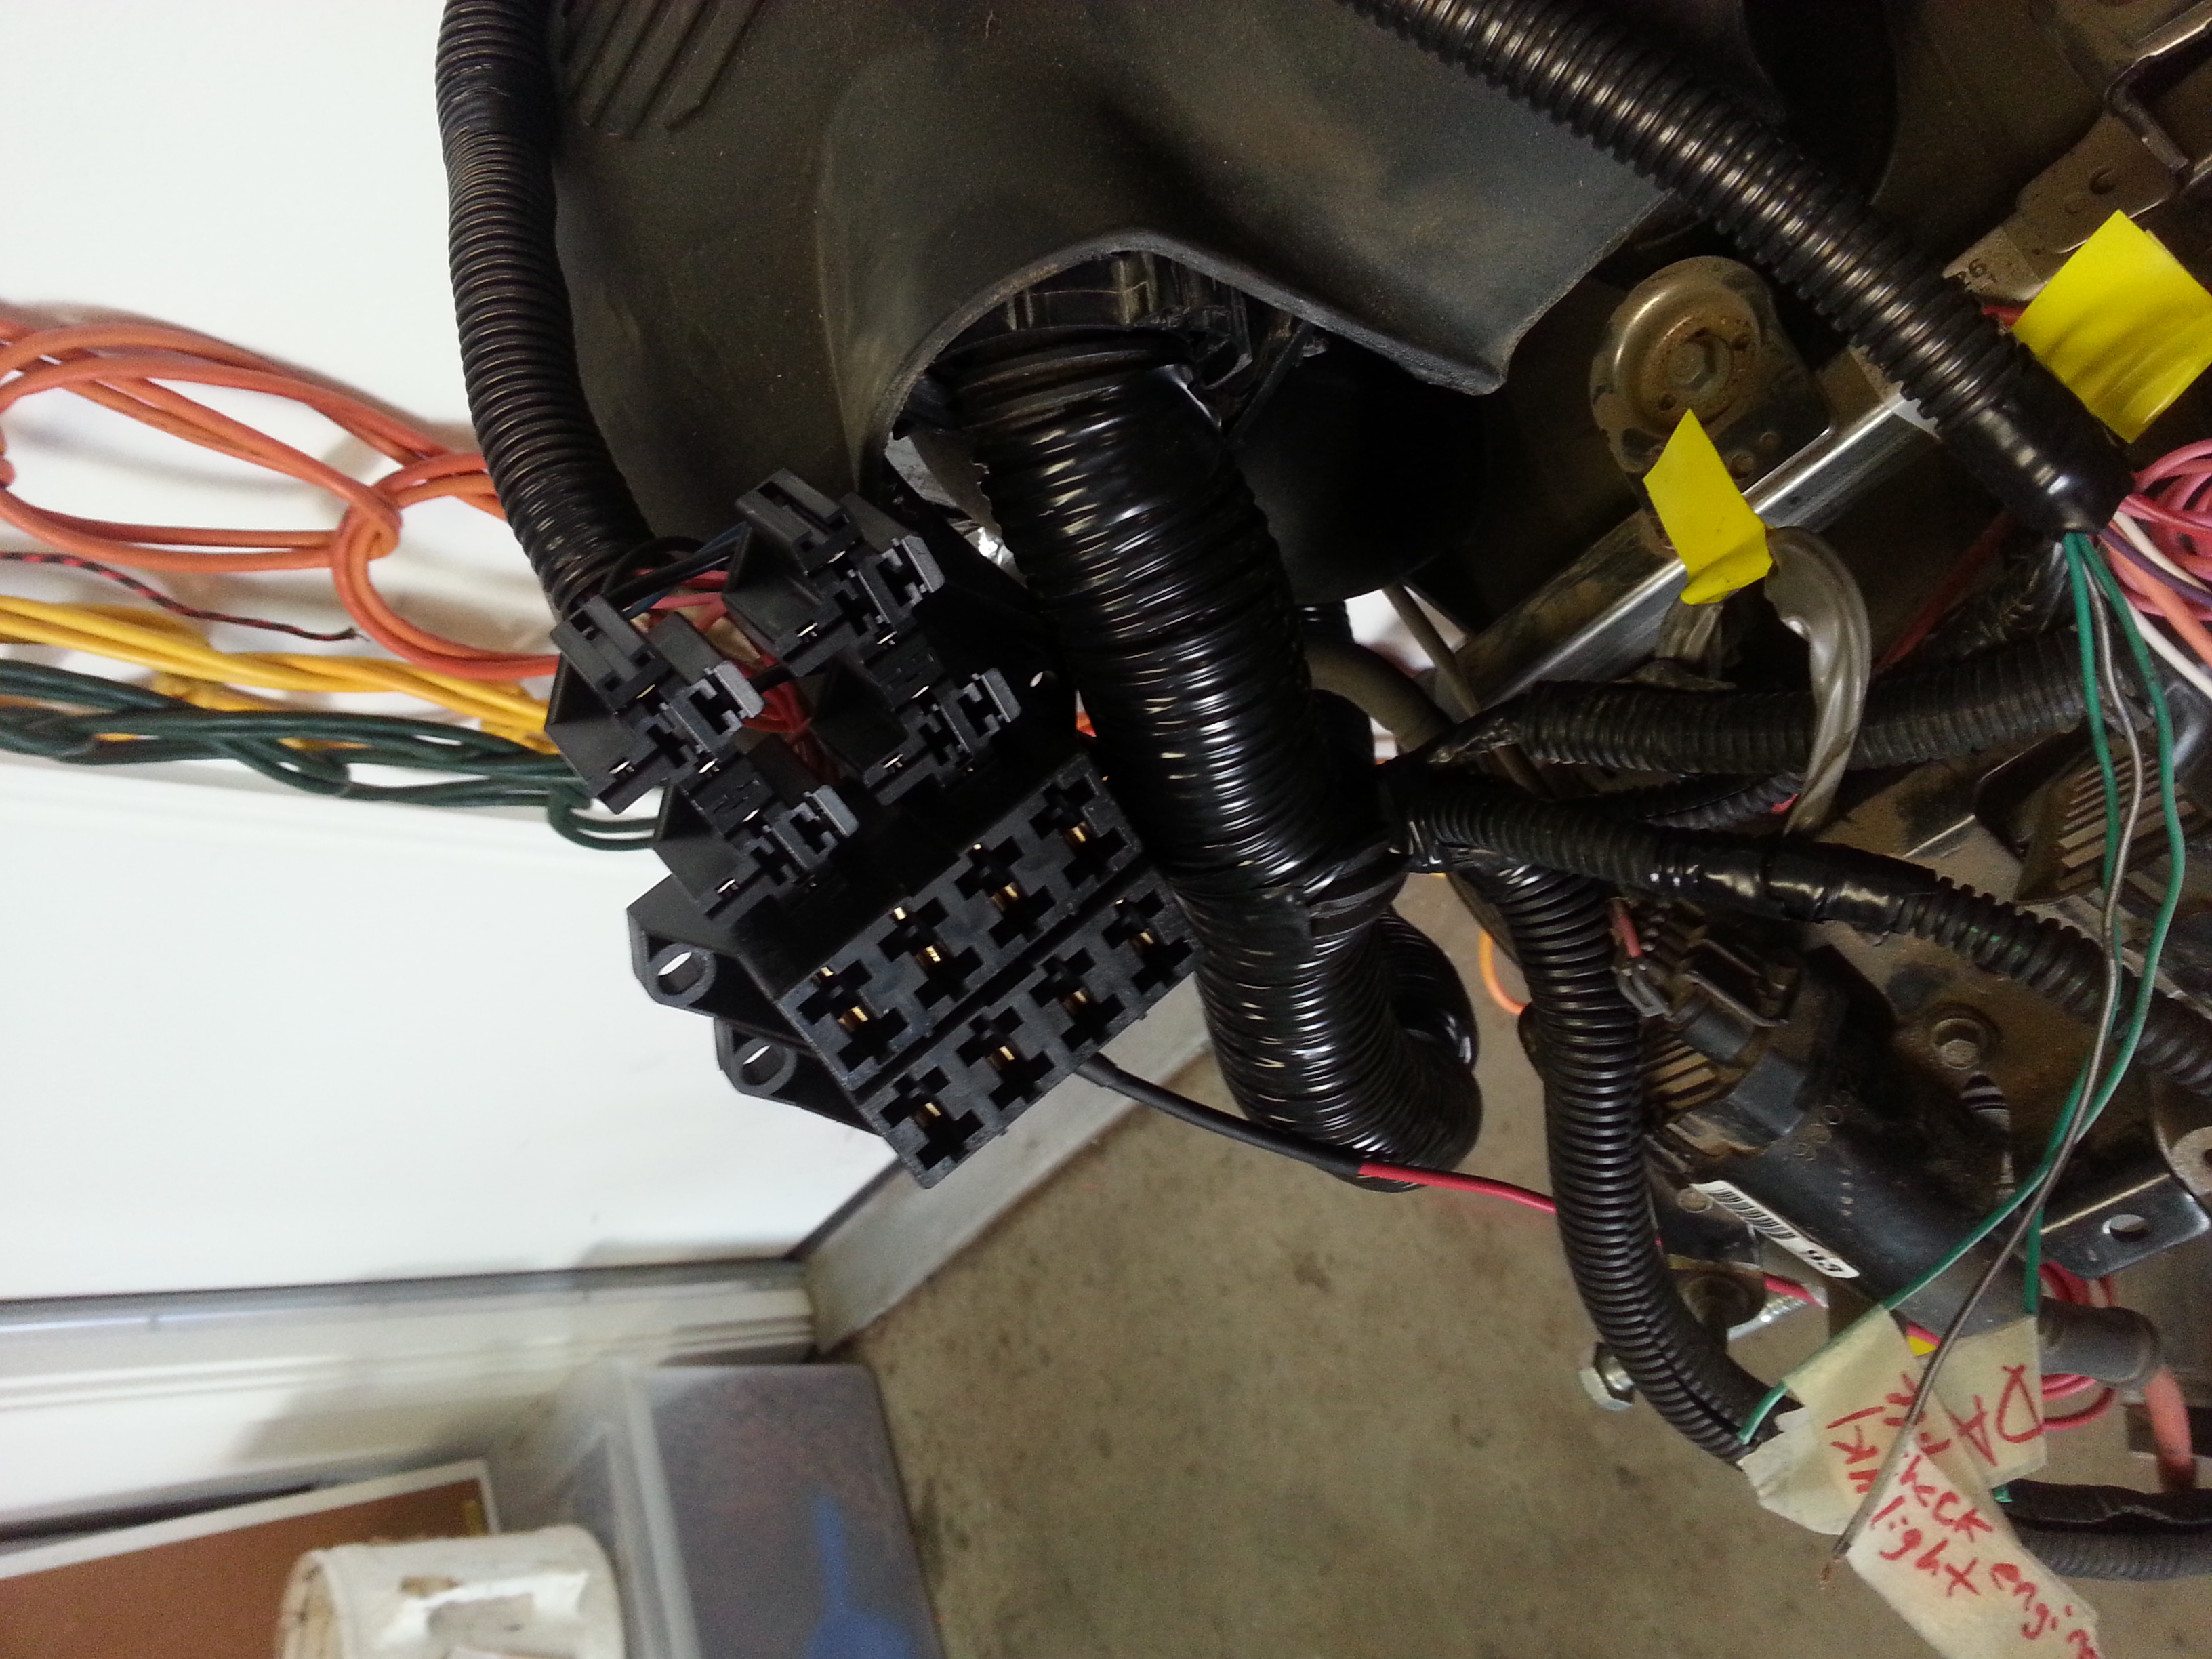 Finished LSX Wiring Harness with diy fuse/relay block - 19106116